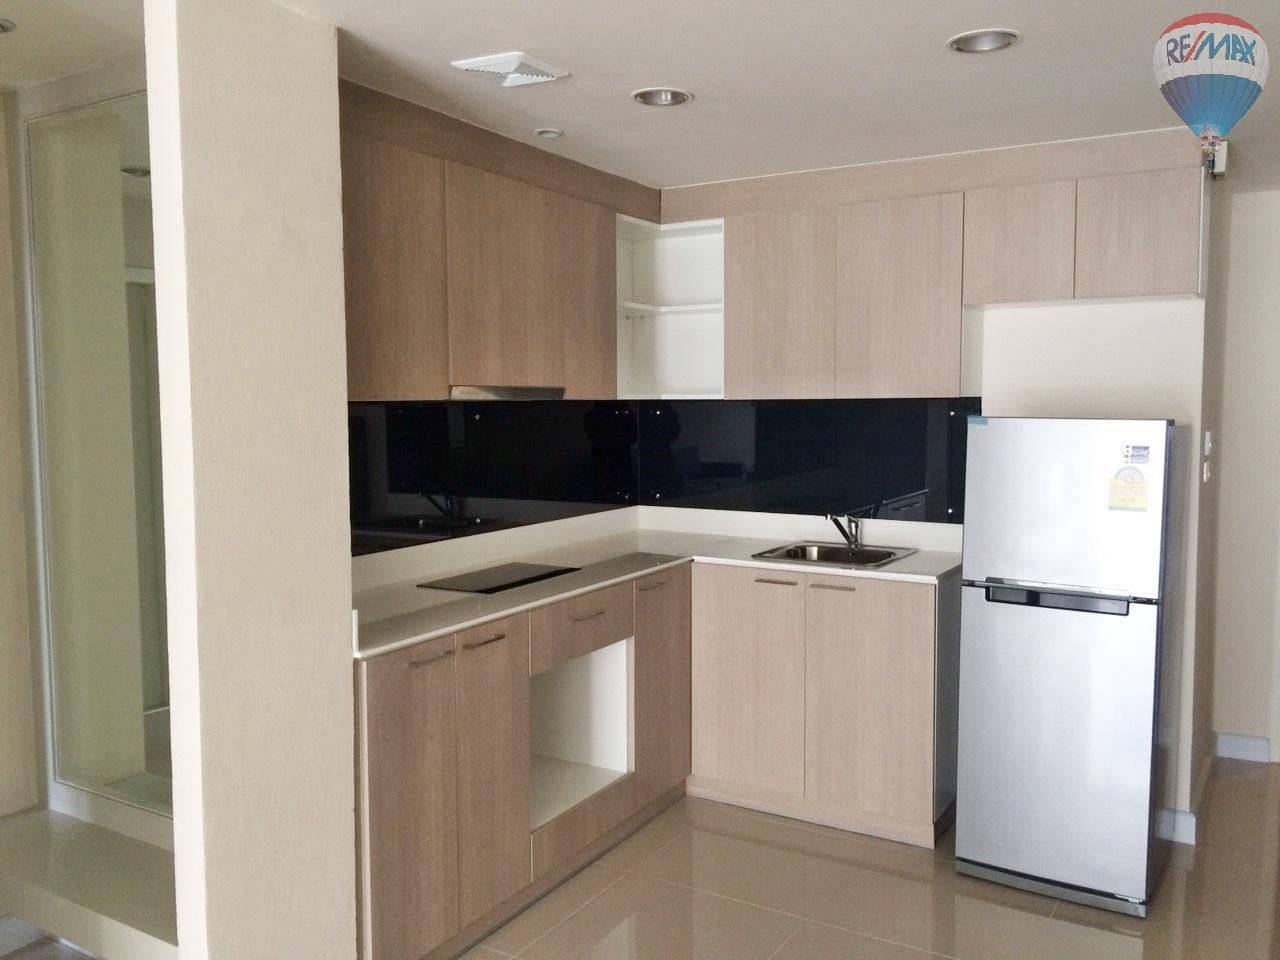 RE/MAX Properties Agency's 2 Bedroom 86 sq.m. for Rent at Asoke Place 4